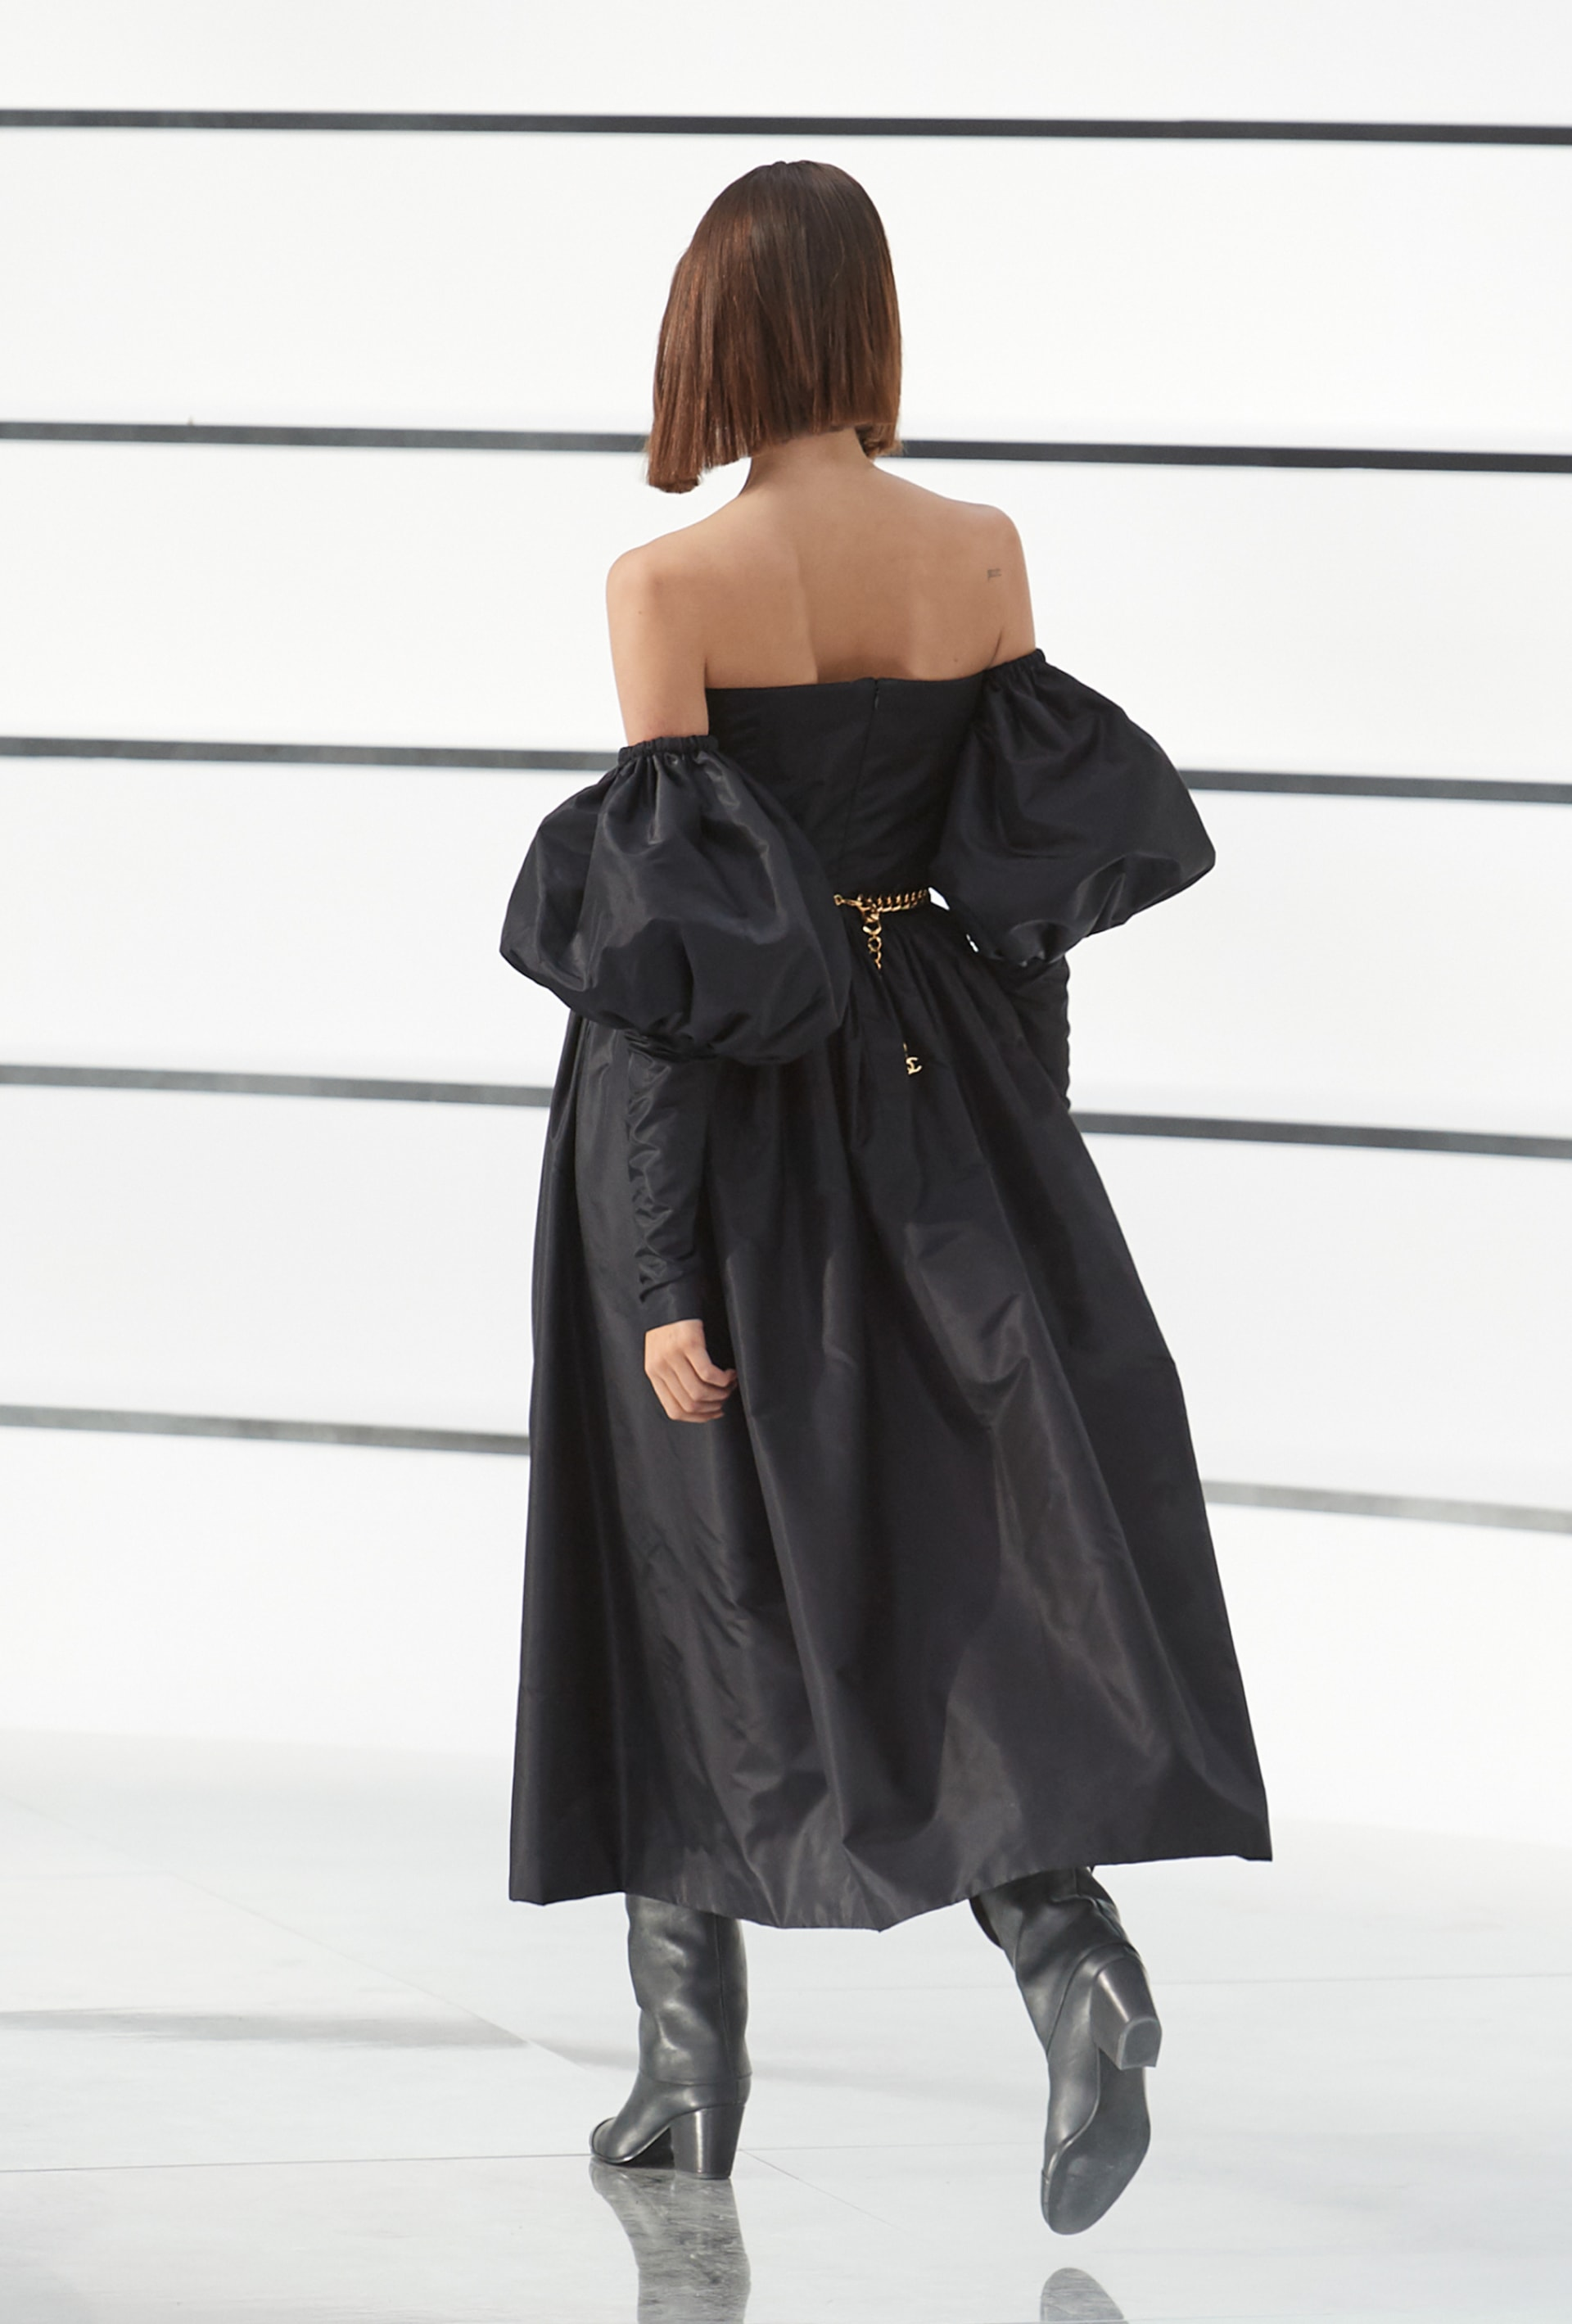 Additional image 2 - Look  9 -  - Fall-Winter 2020/21